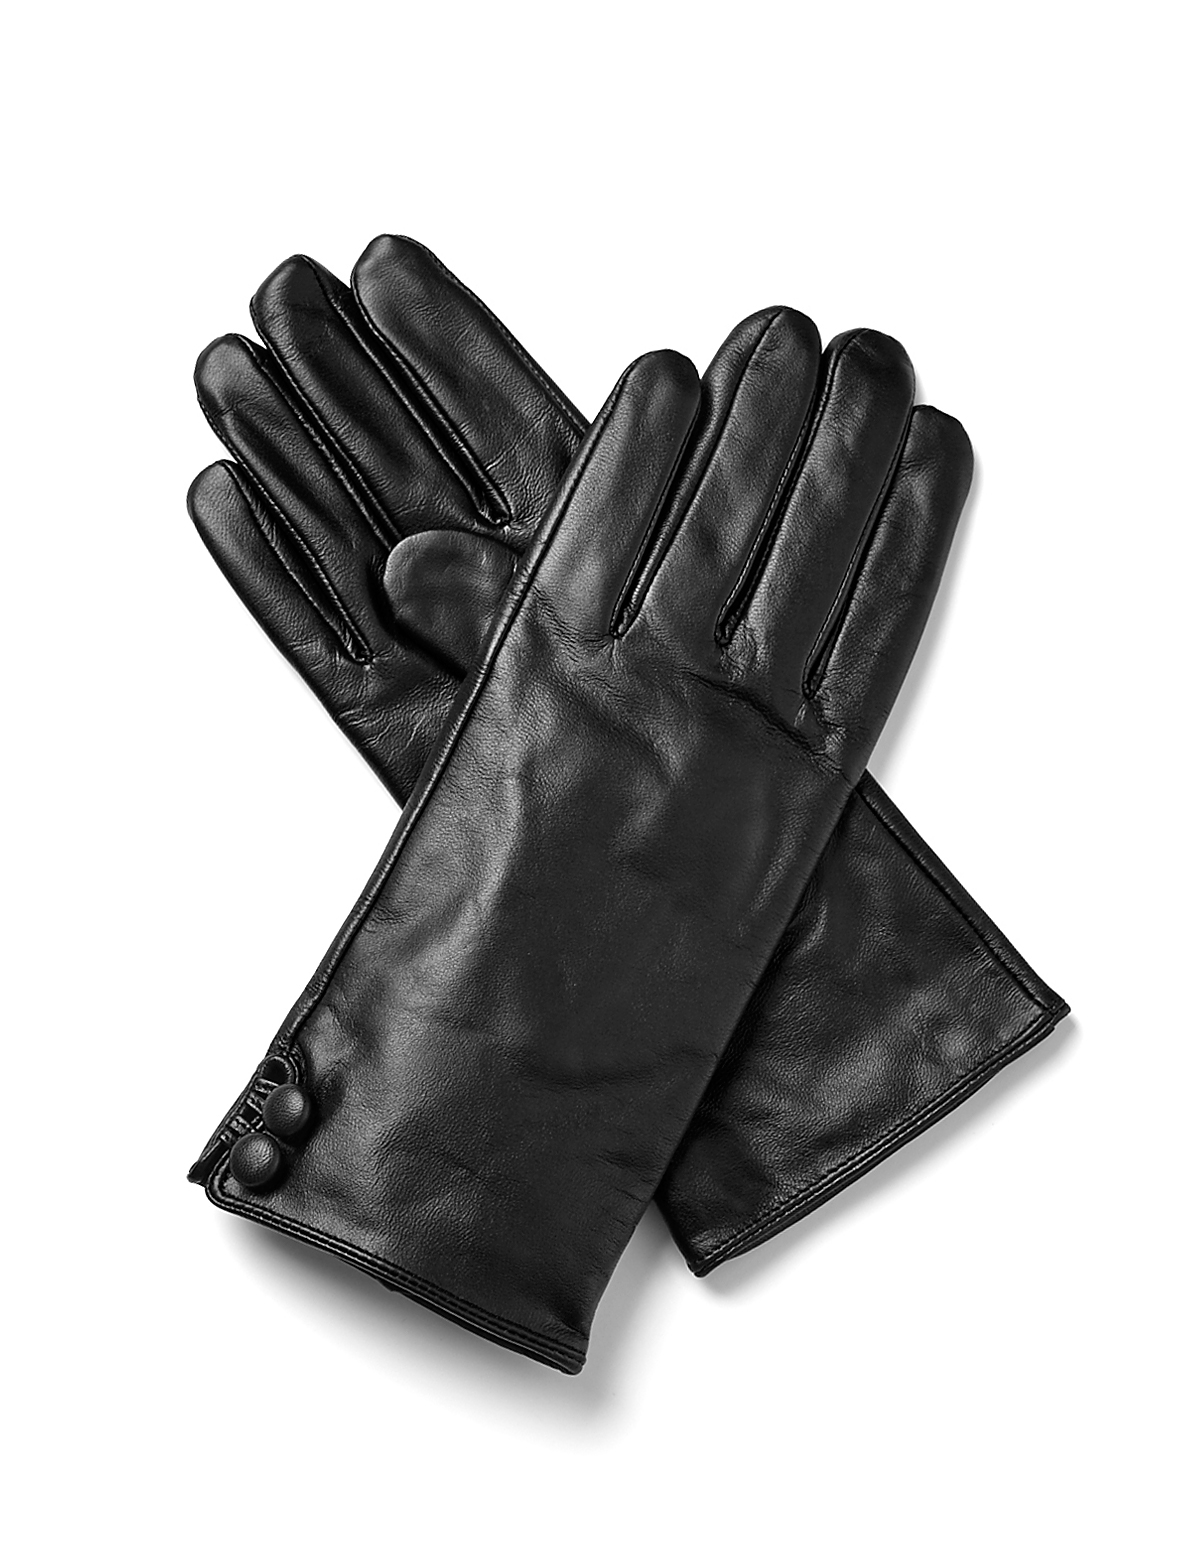 Find great deals on eBay for womens leather texting gloves. Shop with confidence.